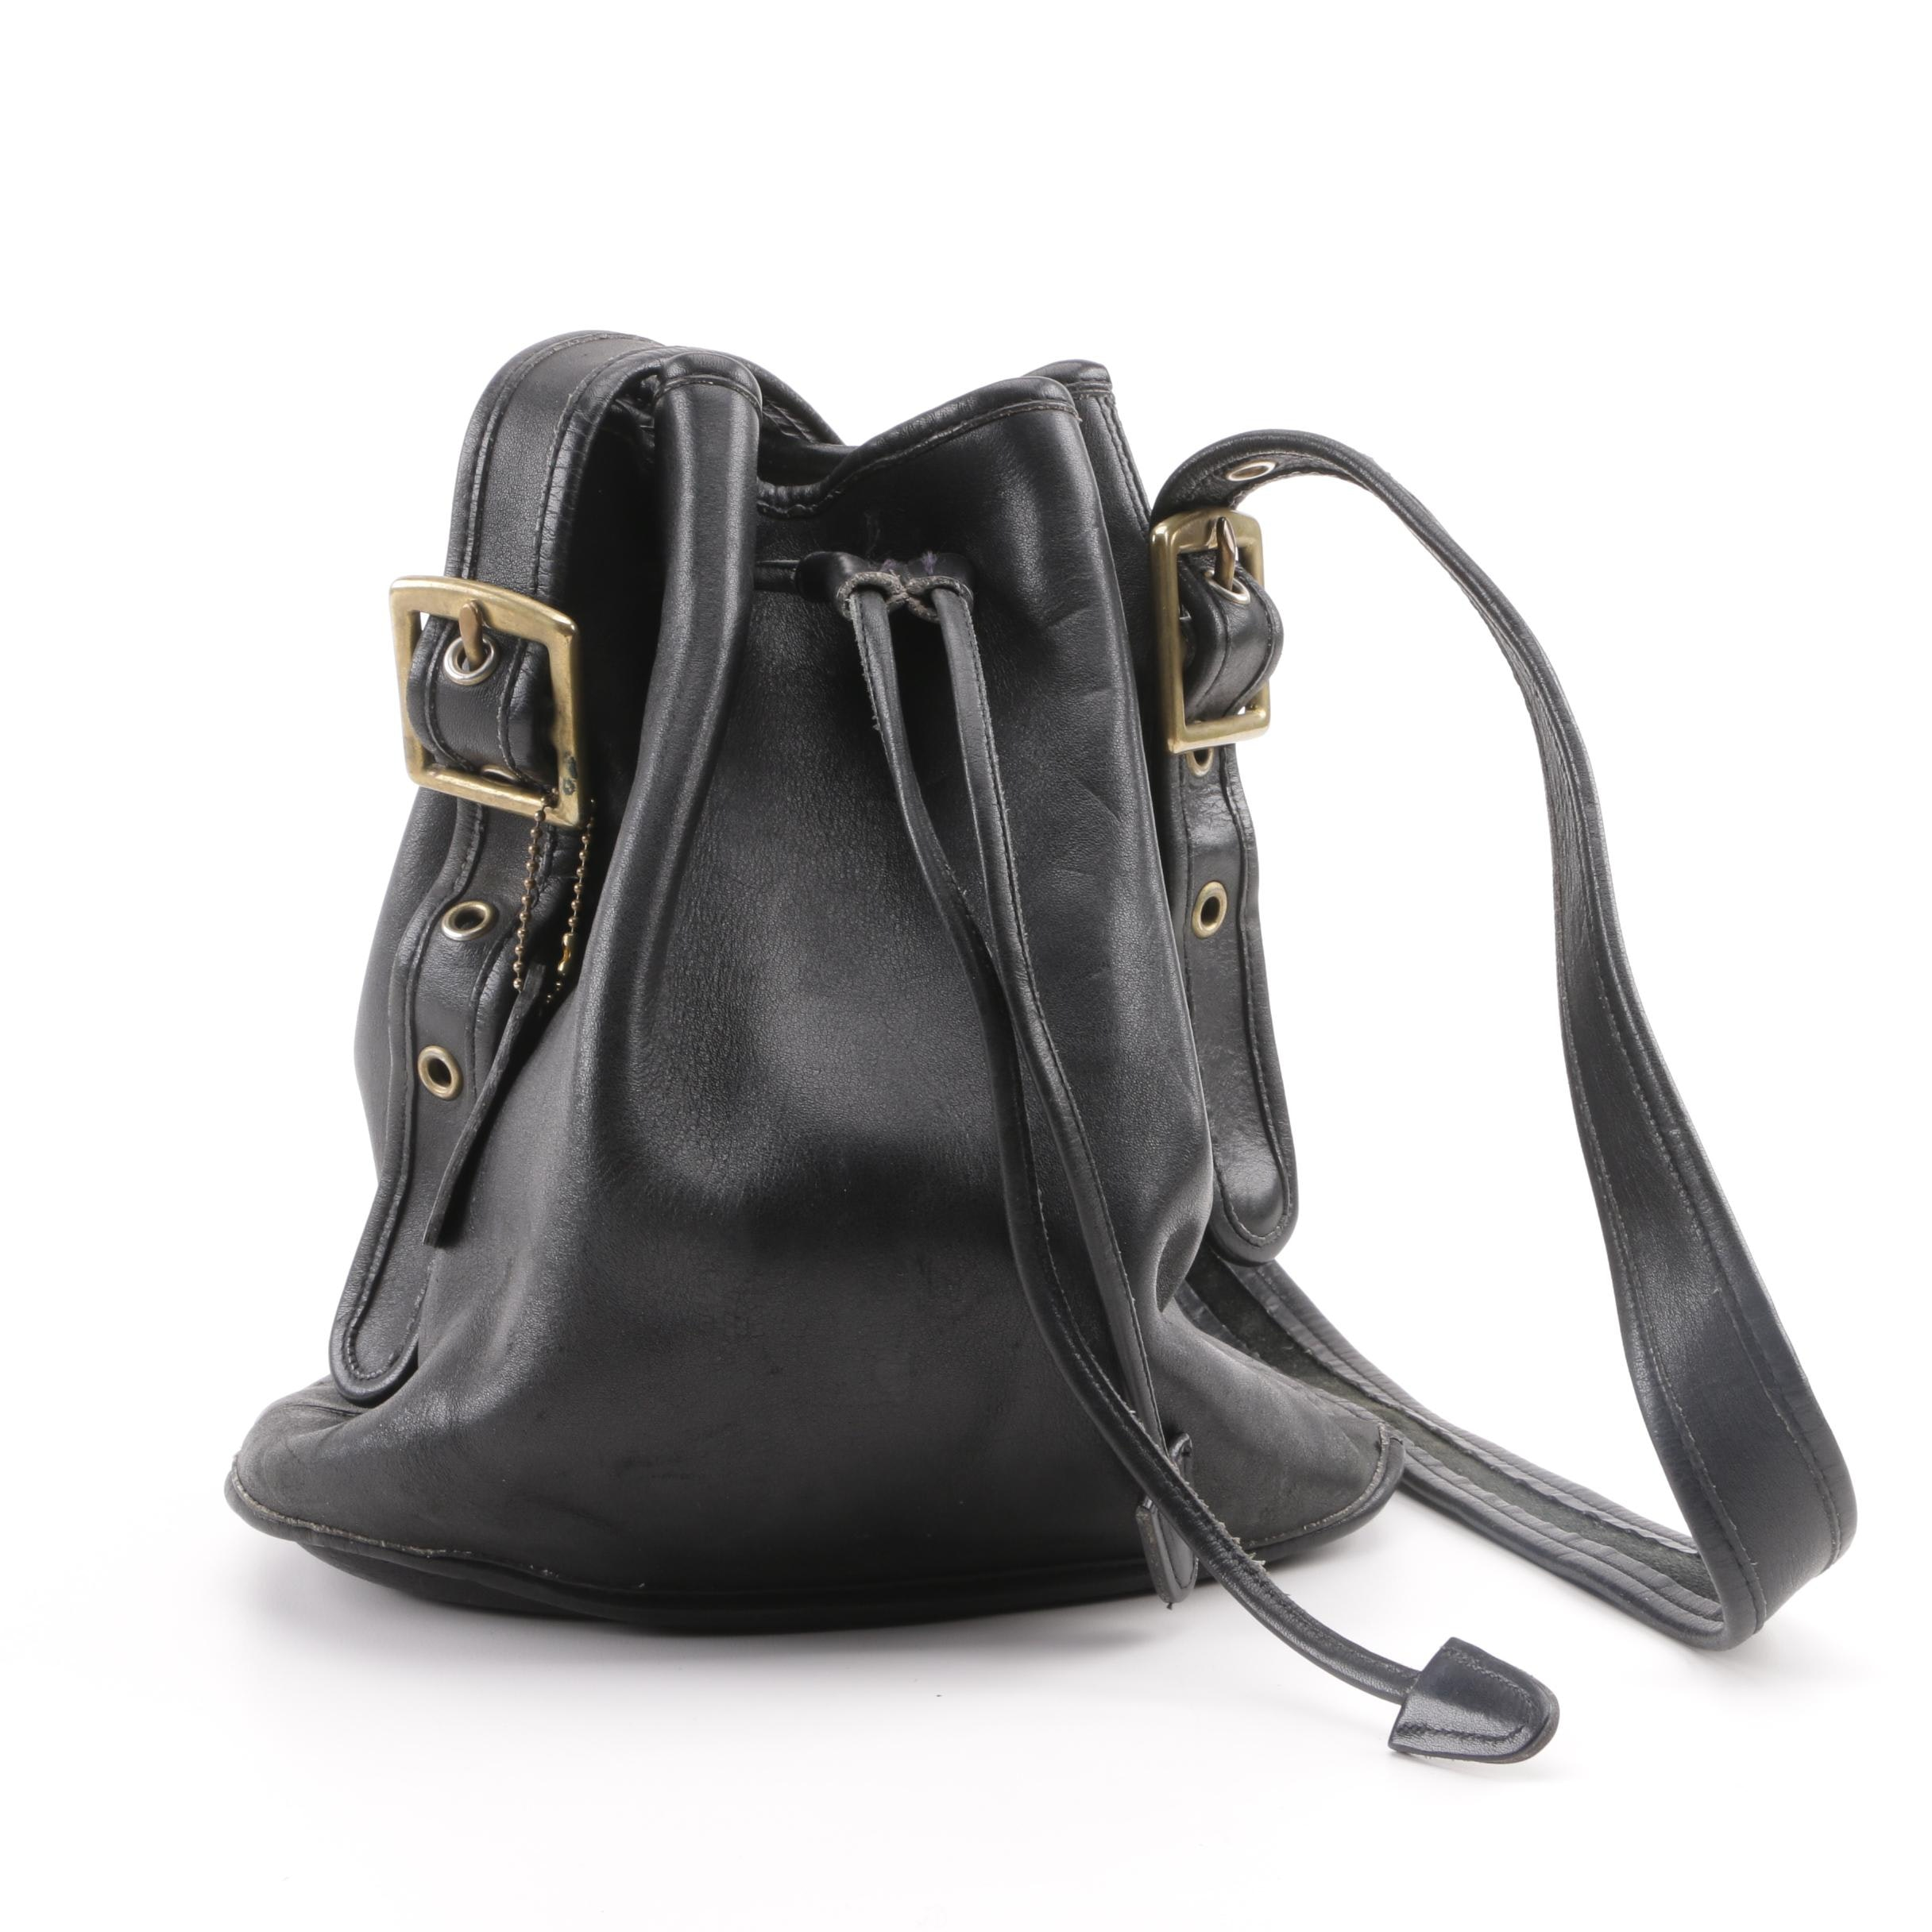 Circa 1990s Coach Black Leather Bucket Bag